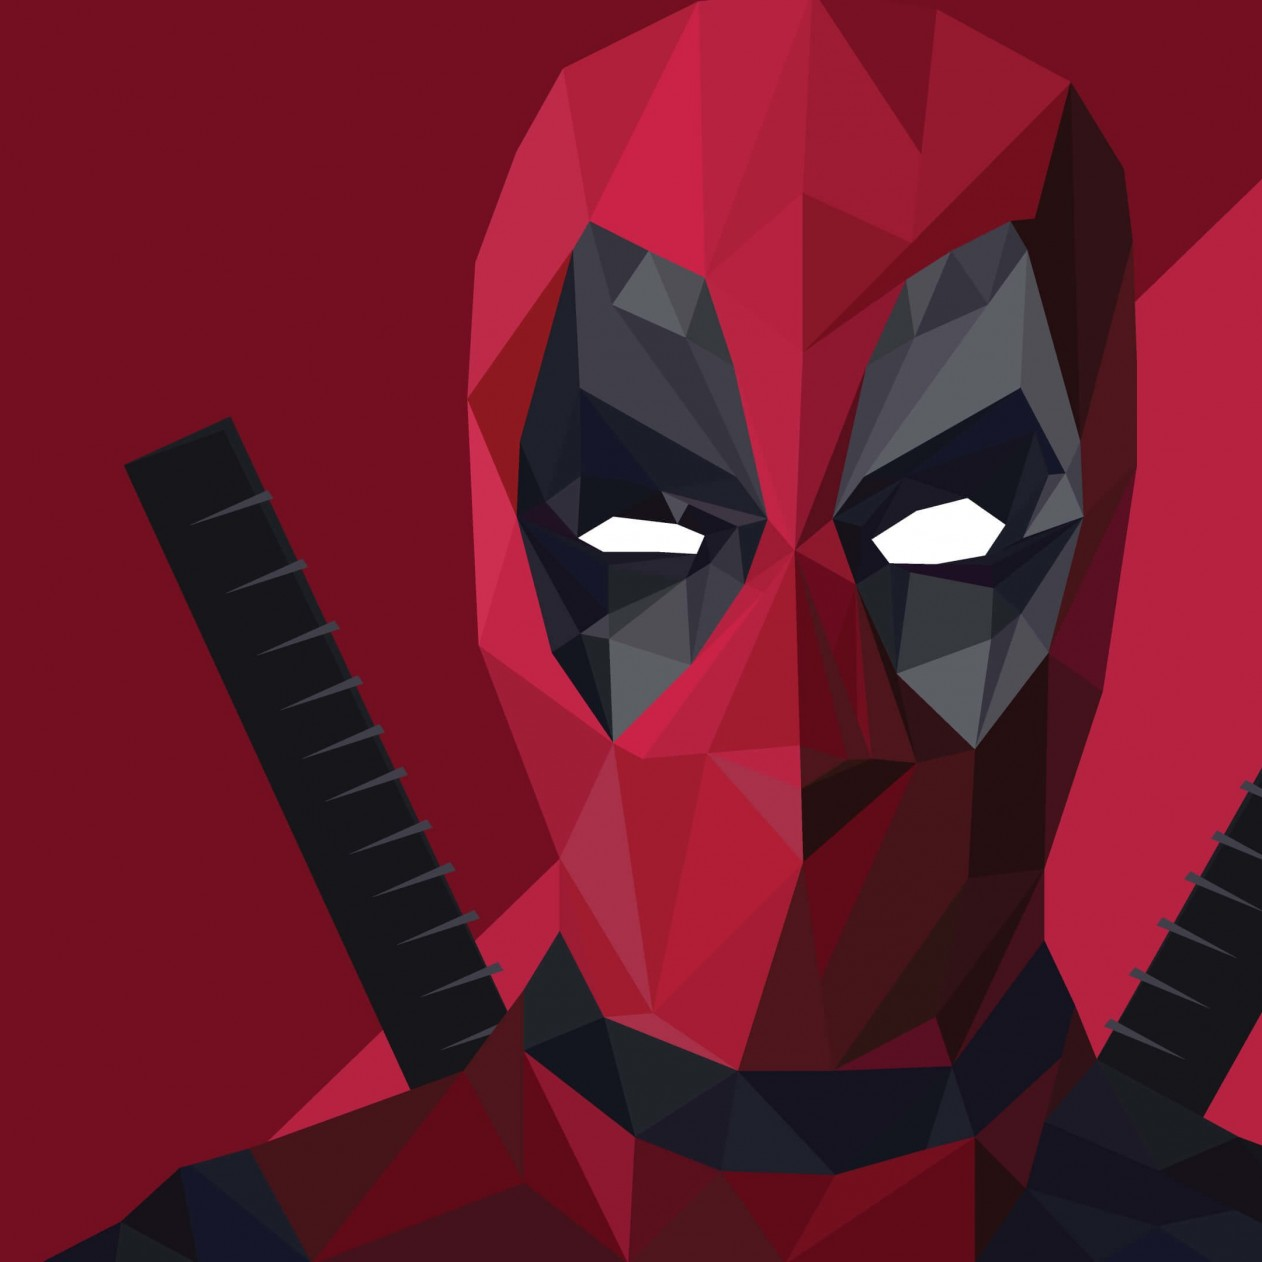 Low Poly Deadpool Wallpaper for Apple iPad mini